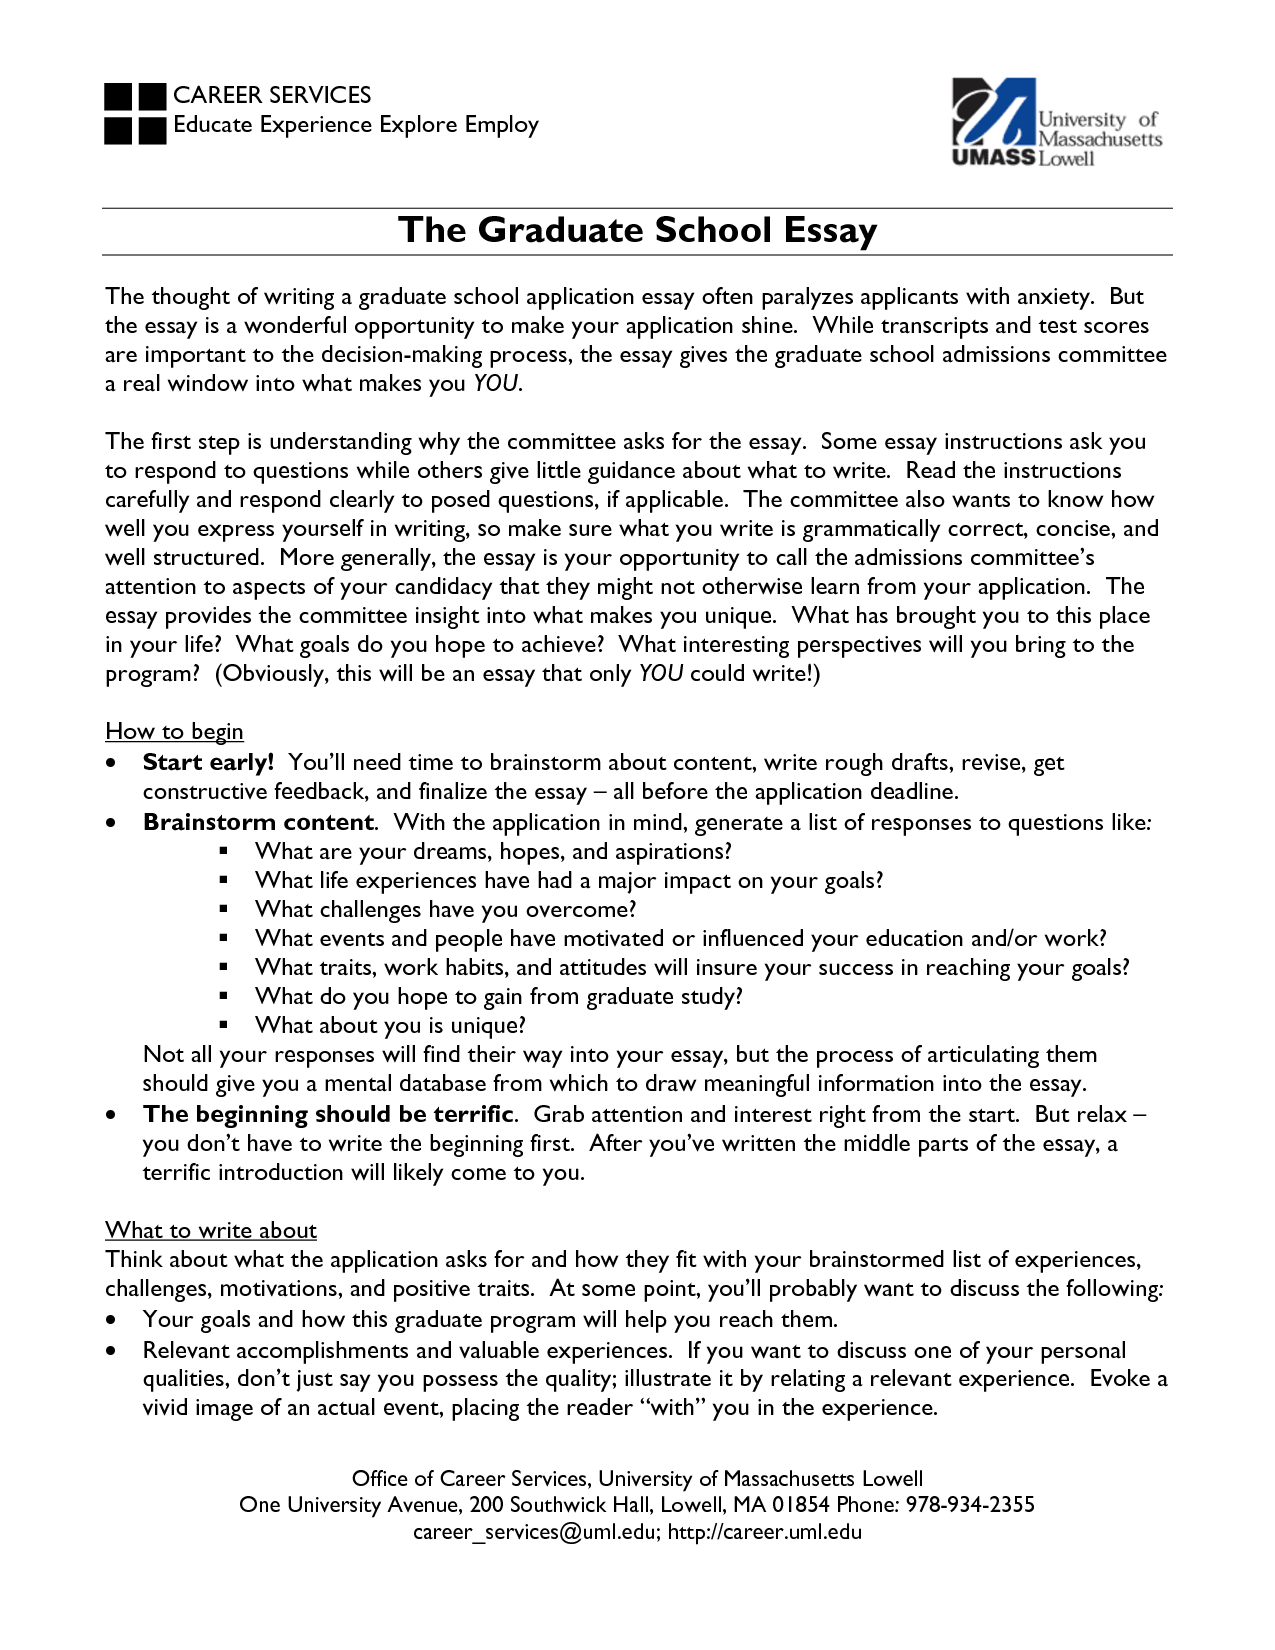 essays application graduate school 5 tips for writing a concise b-school admissions essay discover which computer science graduate schools are among the nation's best.